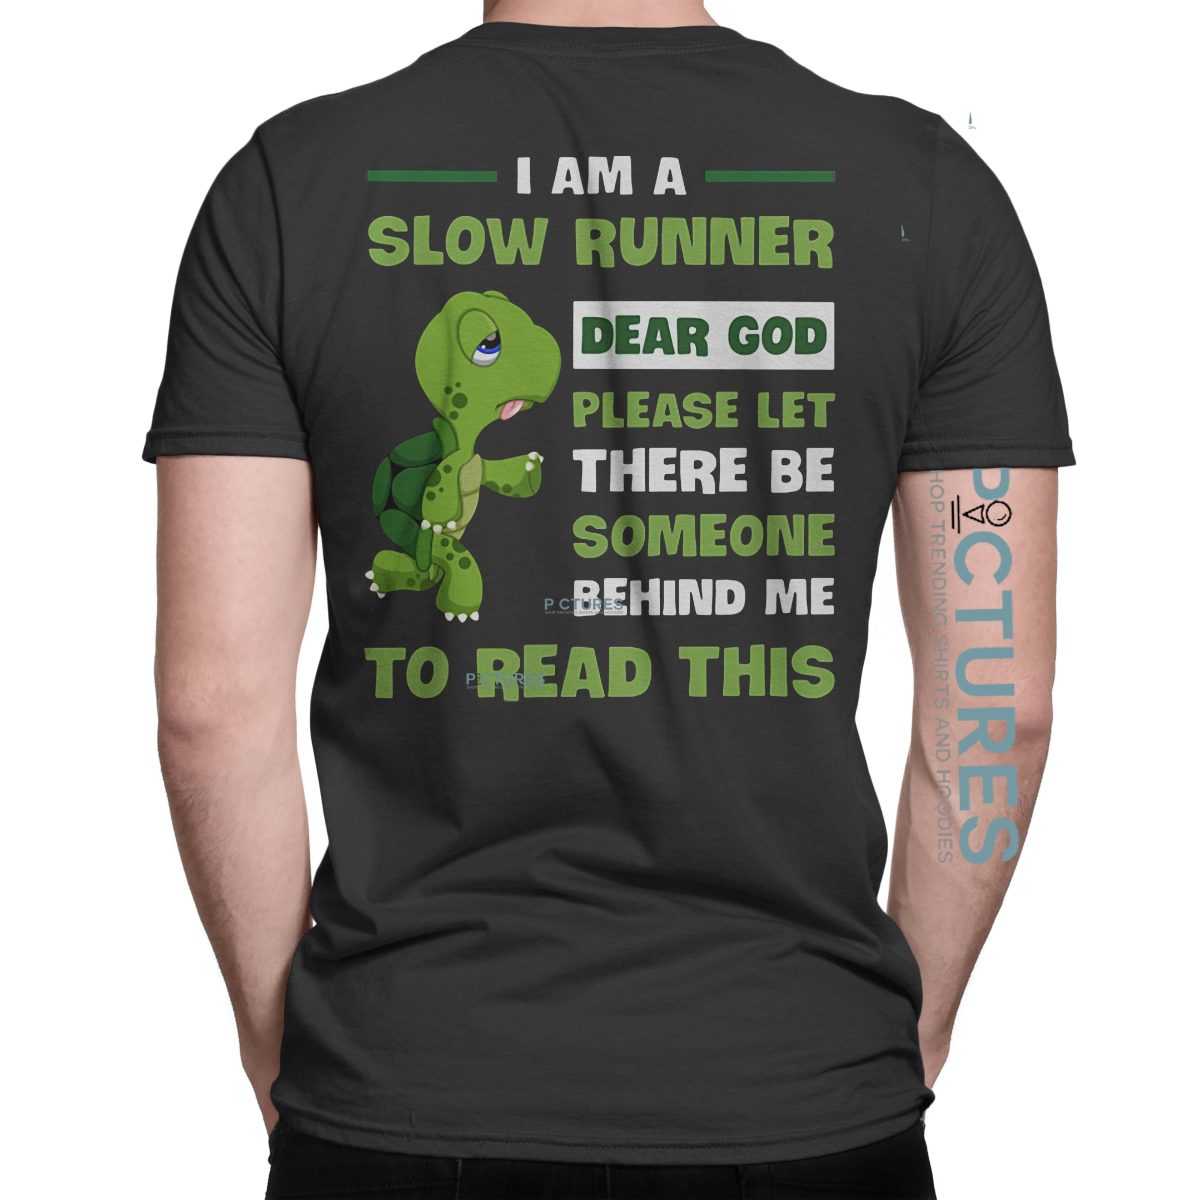 I am a slow runner dear God let someone behind me to read this shirt